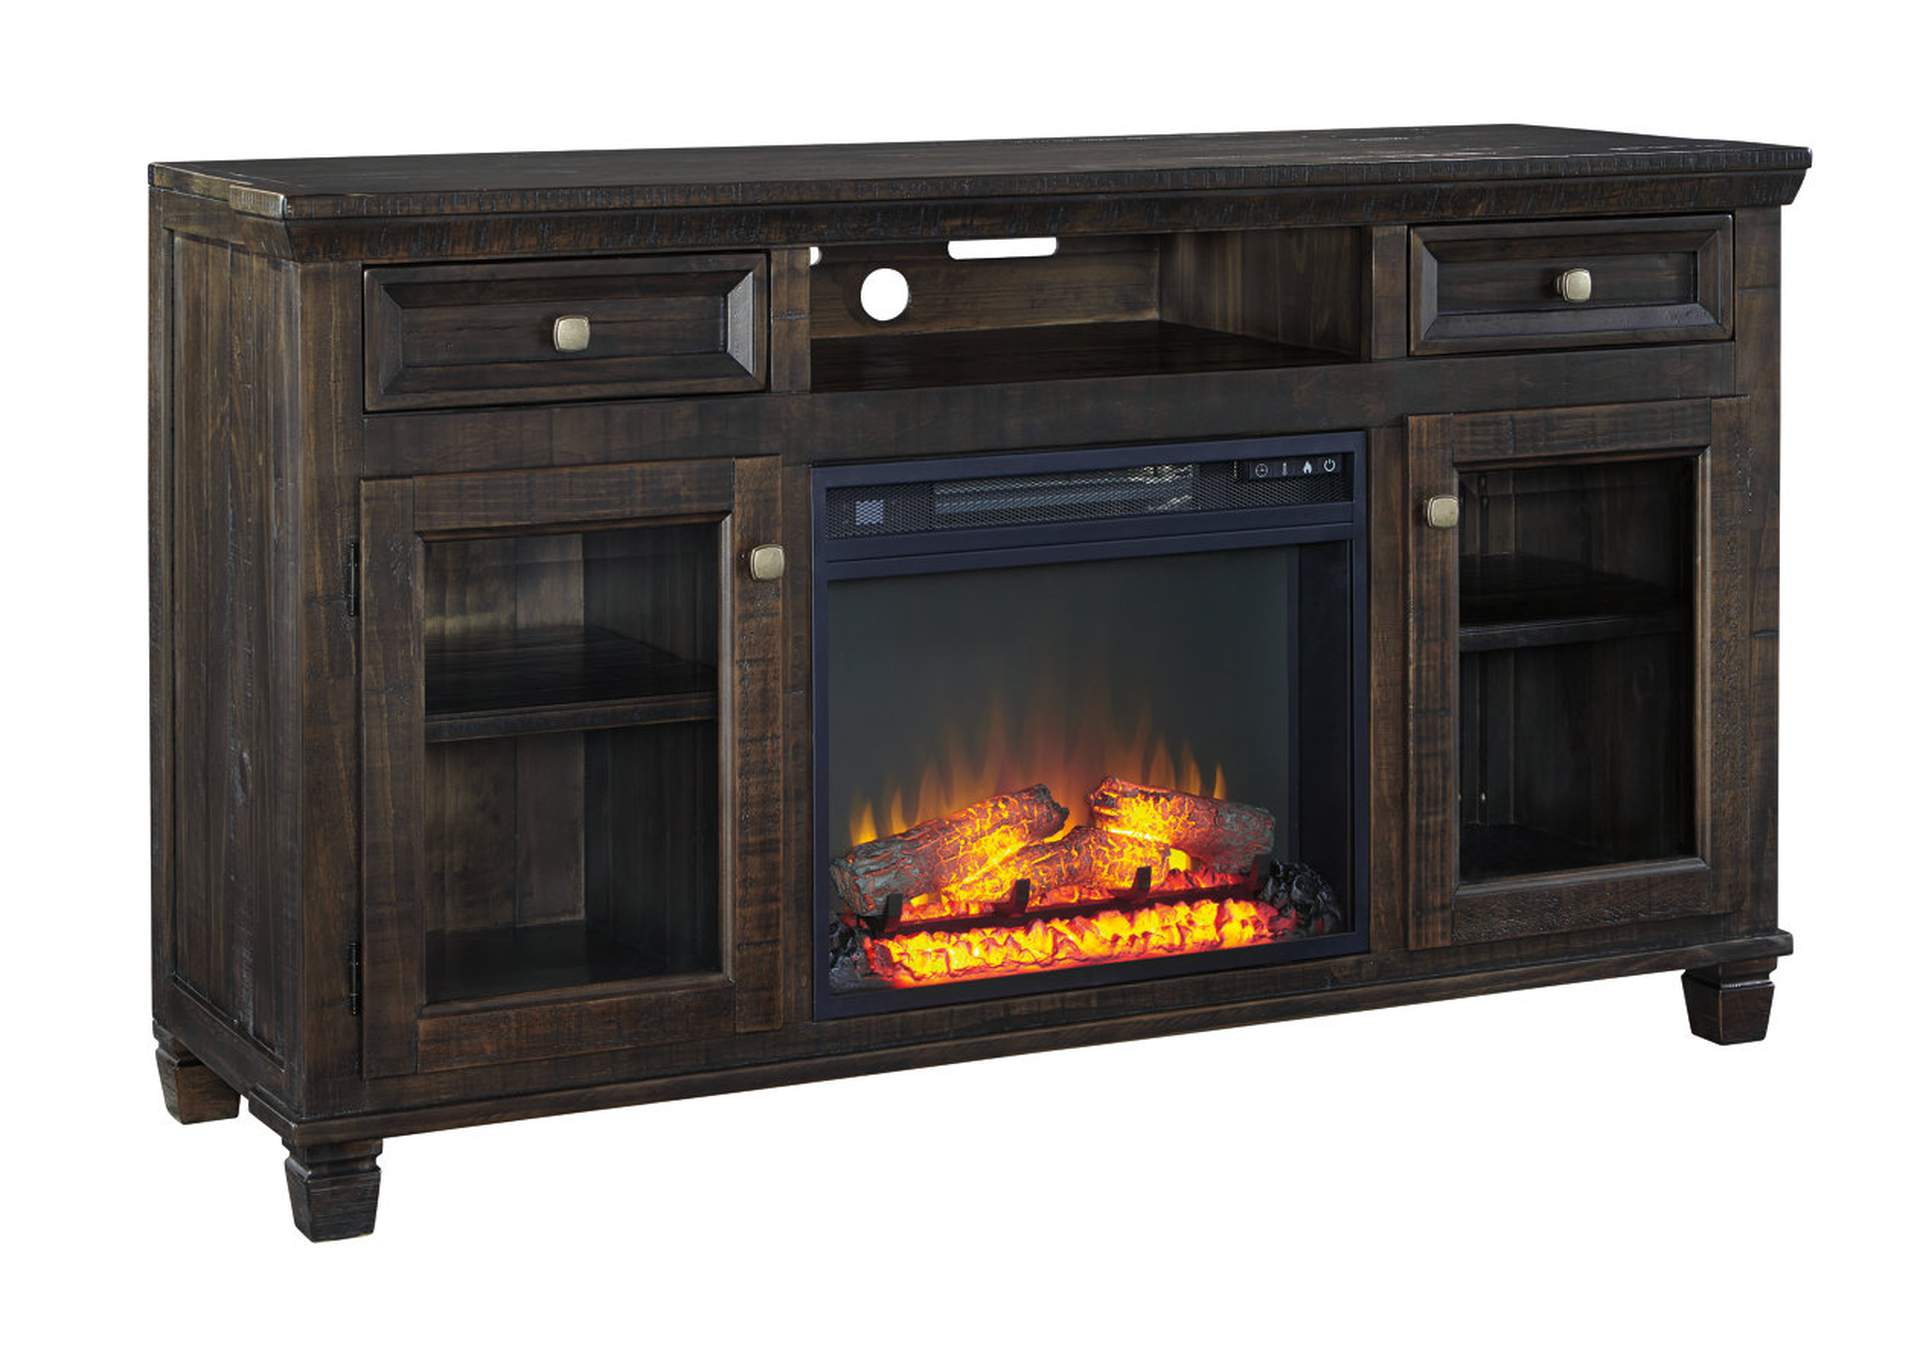 Townser Grayish Brown LG TV Stand w/Fireplace,Signature Design By Ashley